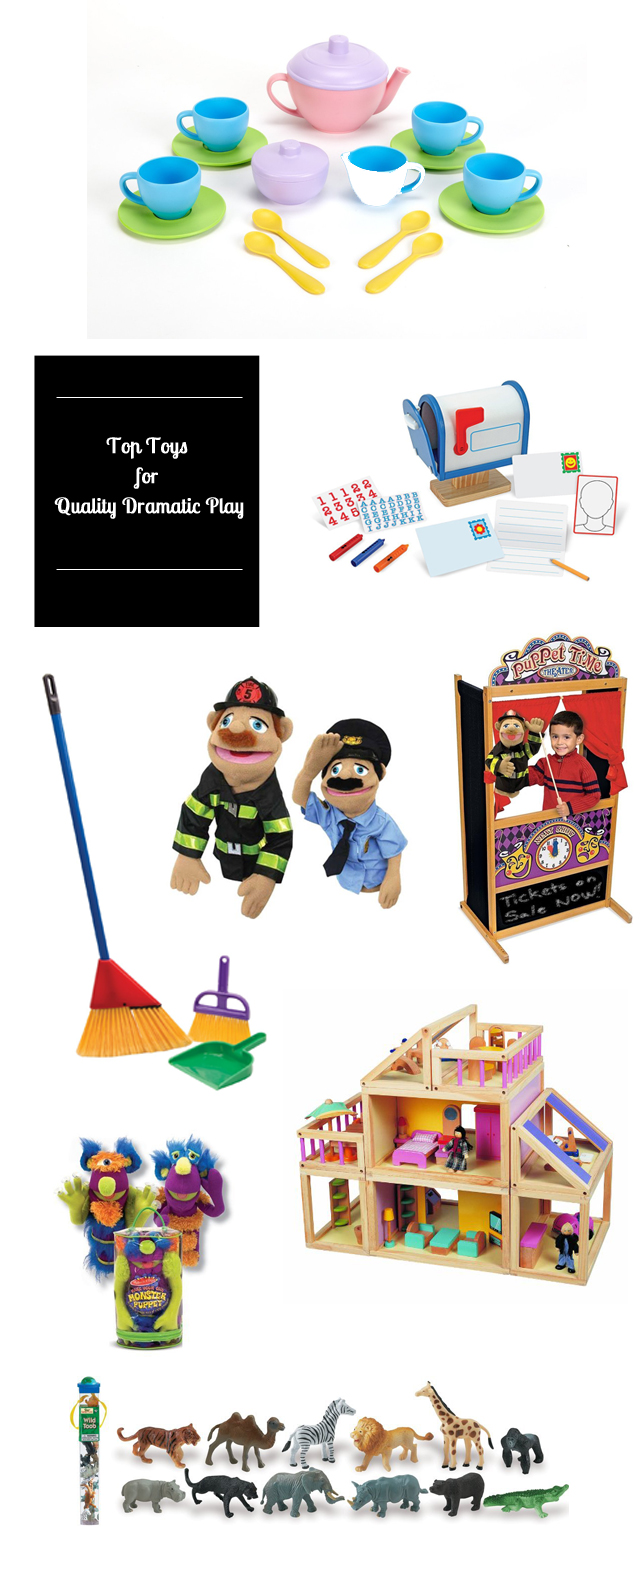 Dramatic Play Toys : Mpmk gift guide top toys for quality dramatic play